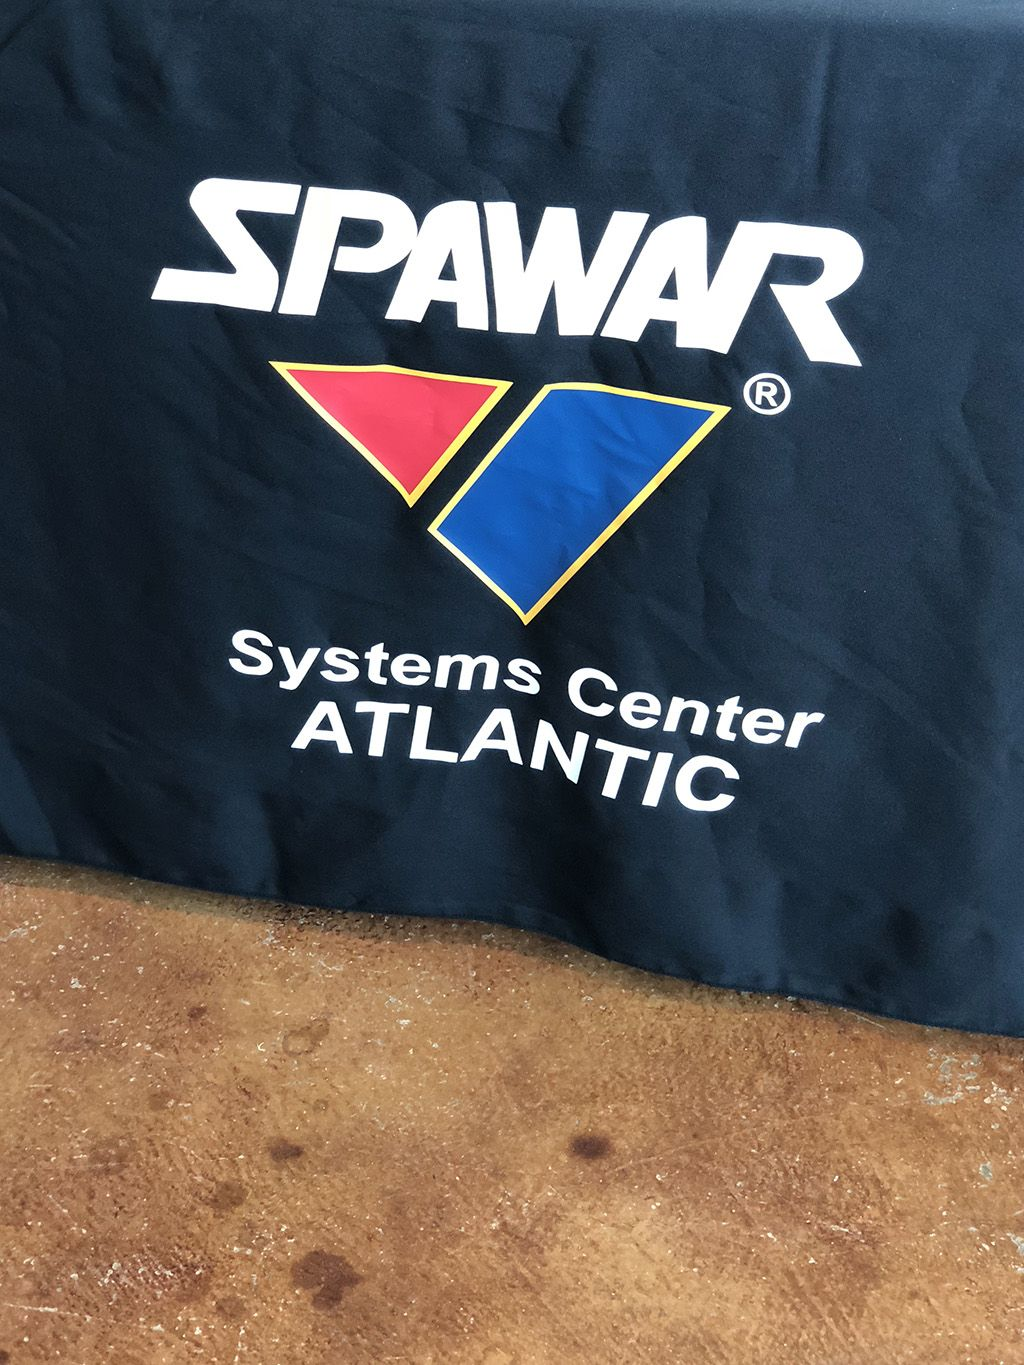 NOLA SPAWAR Cyber Security Camp for Kids 2018